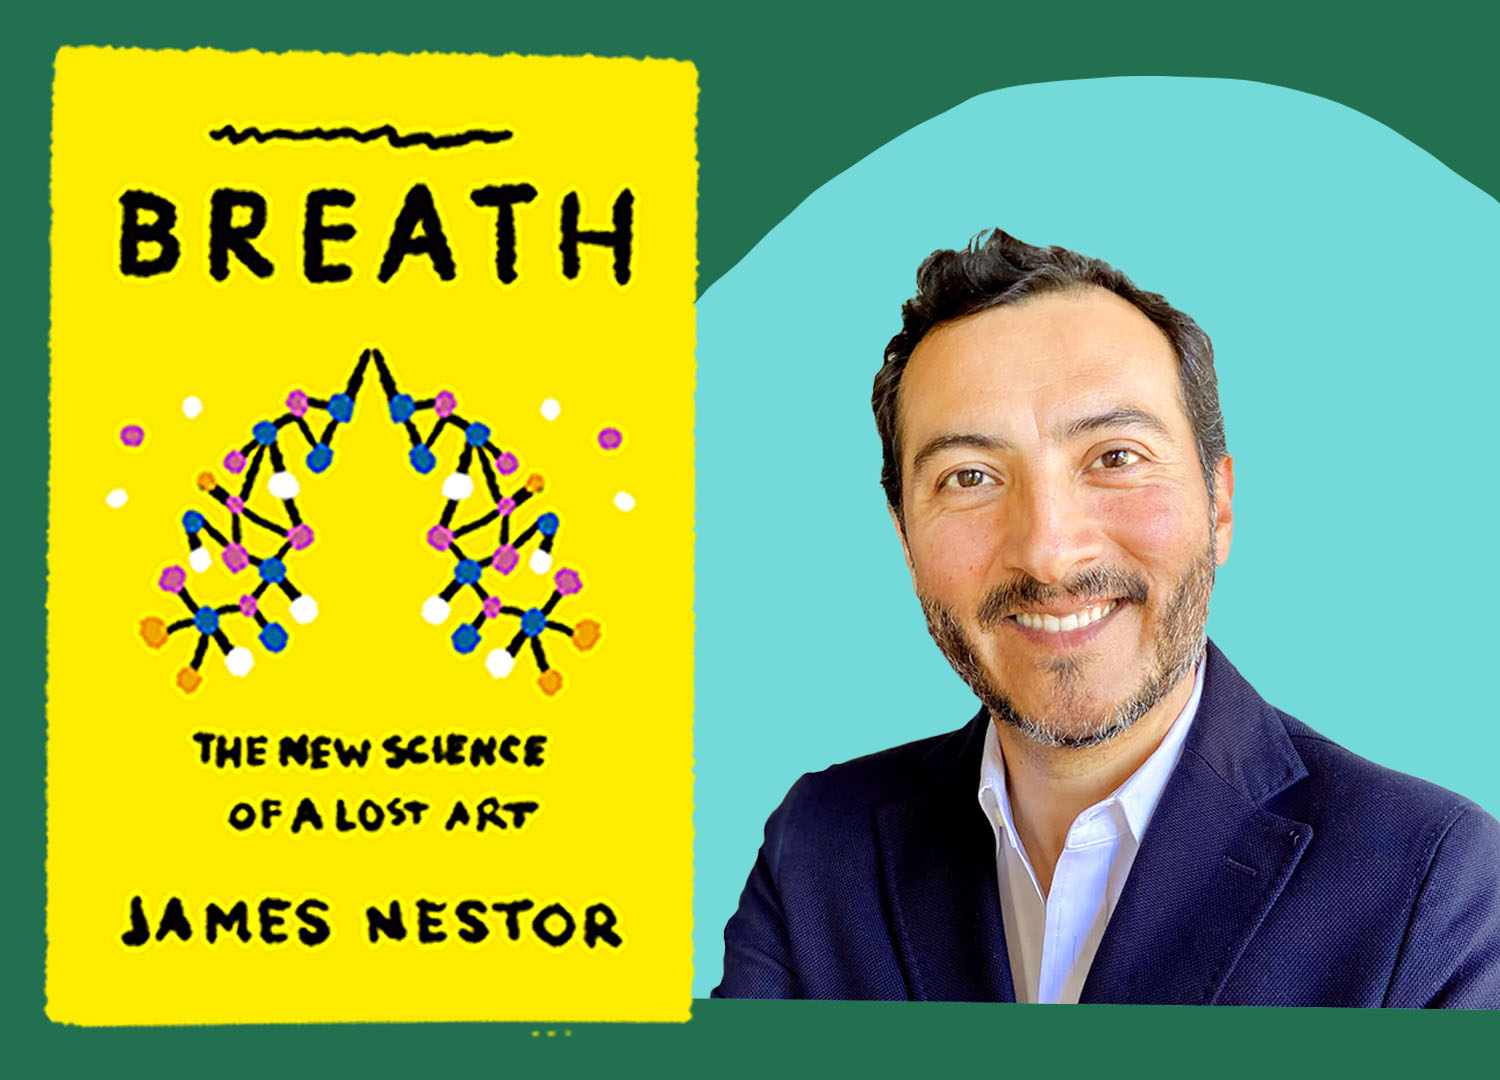 """A man smiles and there is a teal circle behind his head. A yellow book with the word """"Breath"""" is illustrated to his left."""